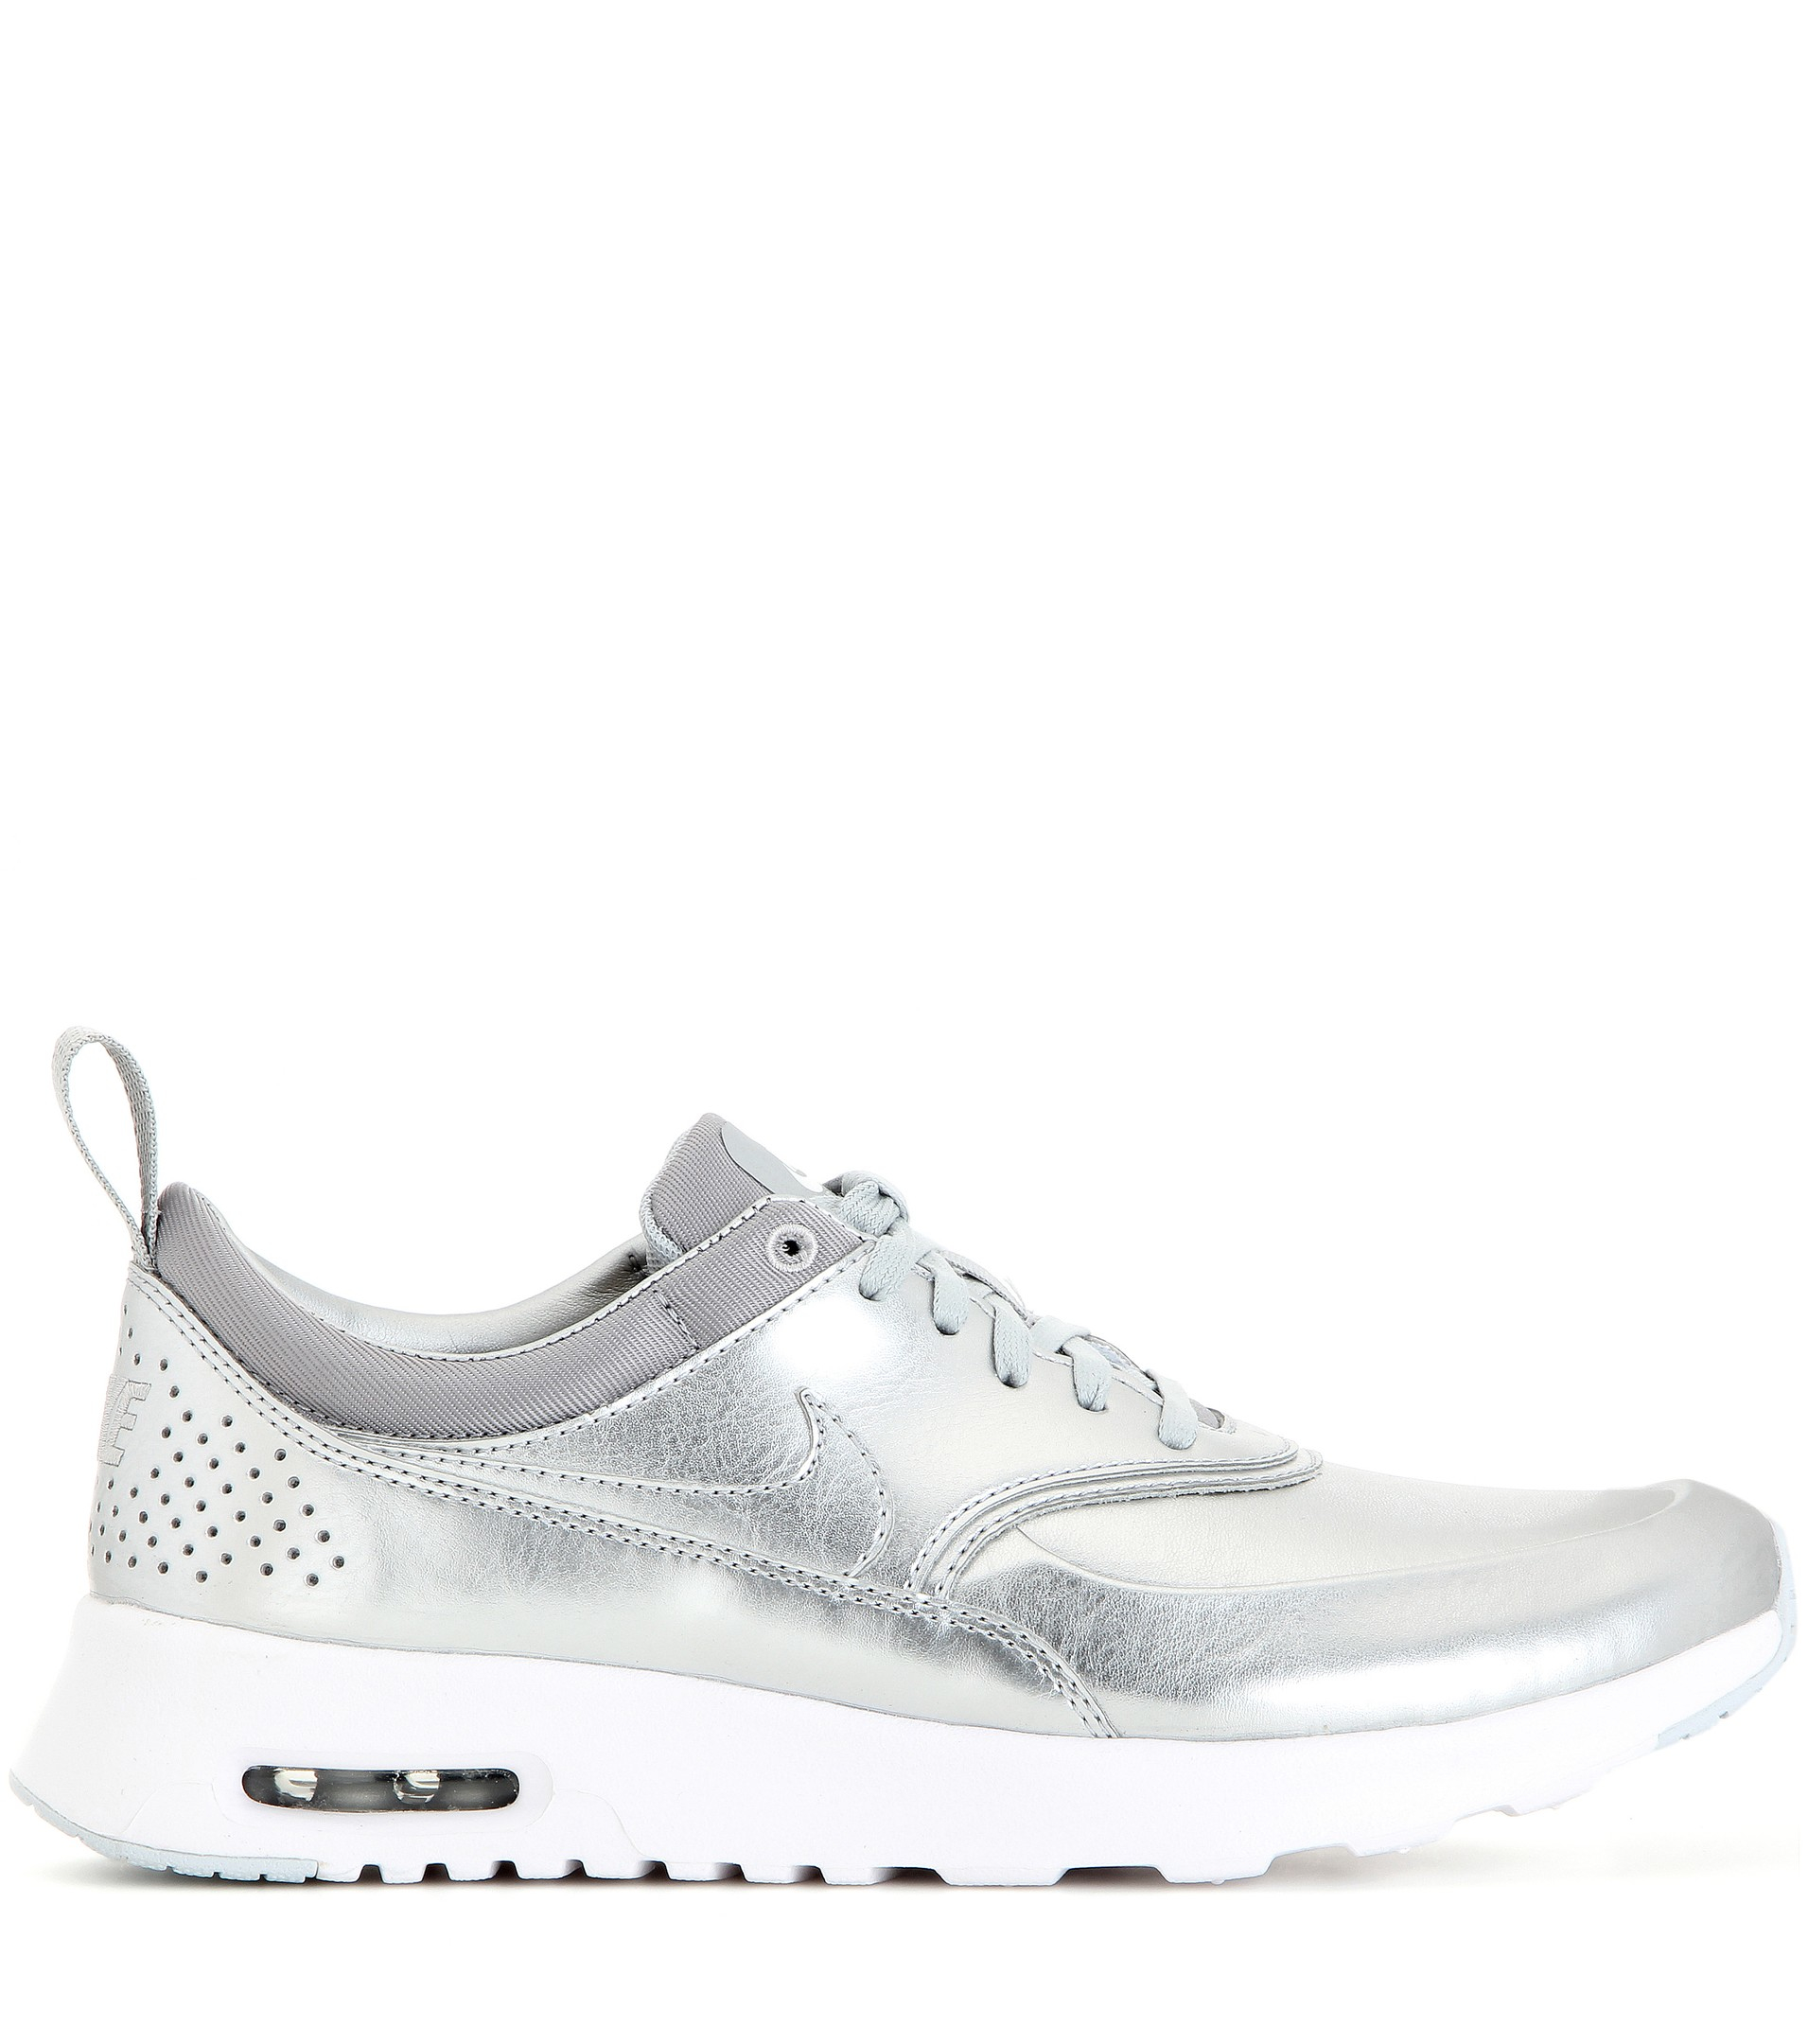 nike air max thea metallic silver sneakers in metallic lyst. Black Bedroom Furniture Sets. Home Design Ideas